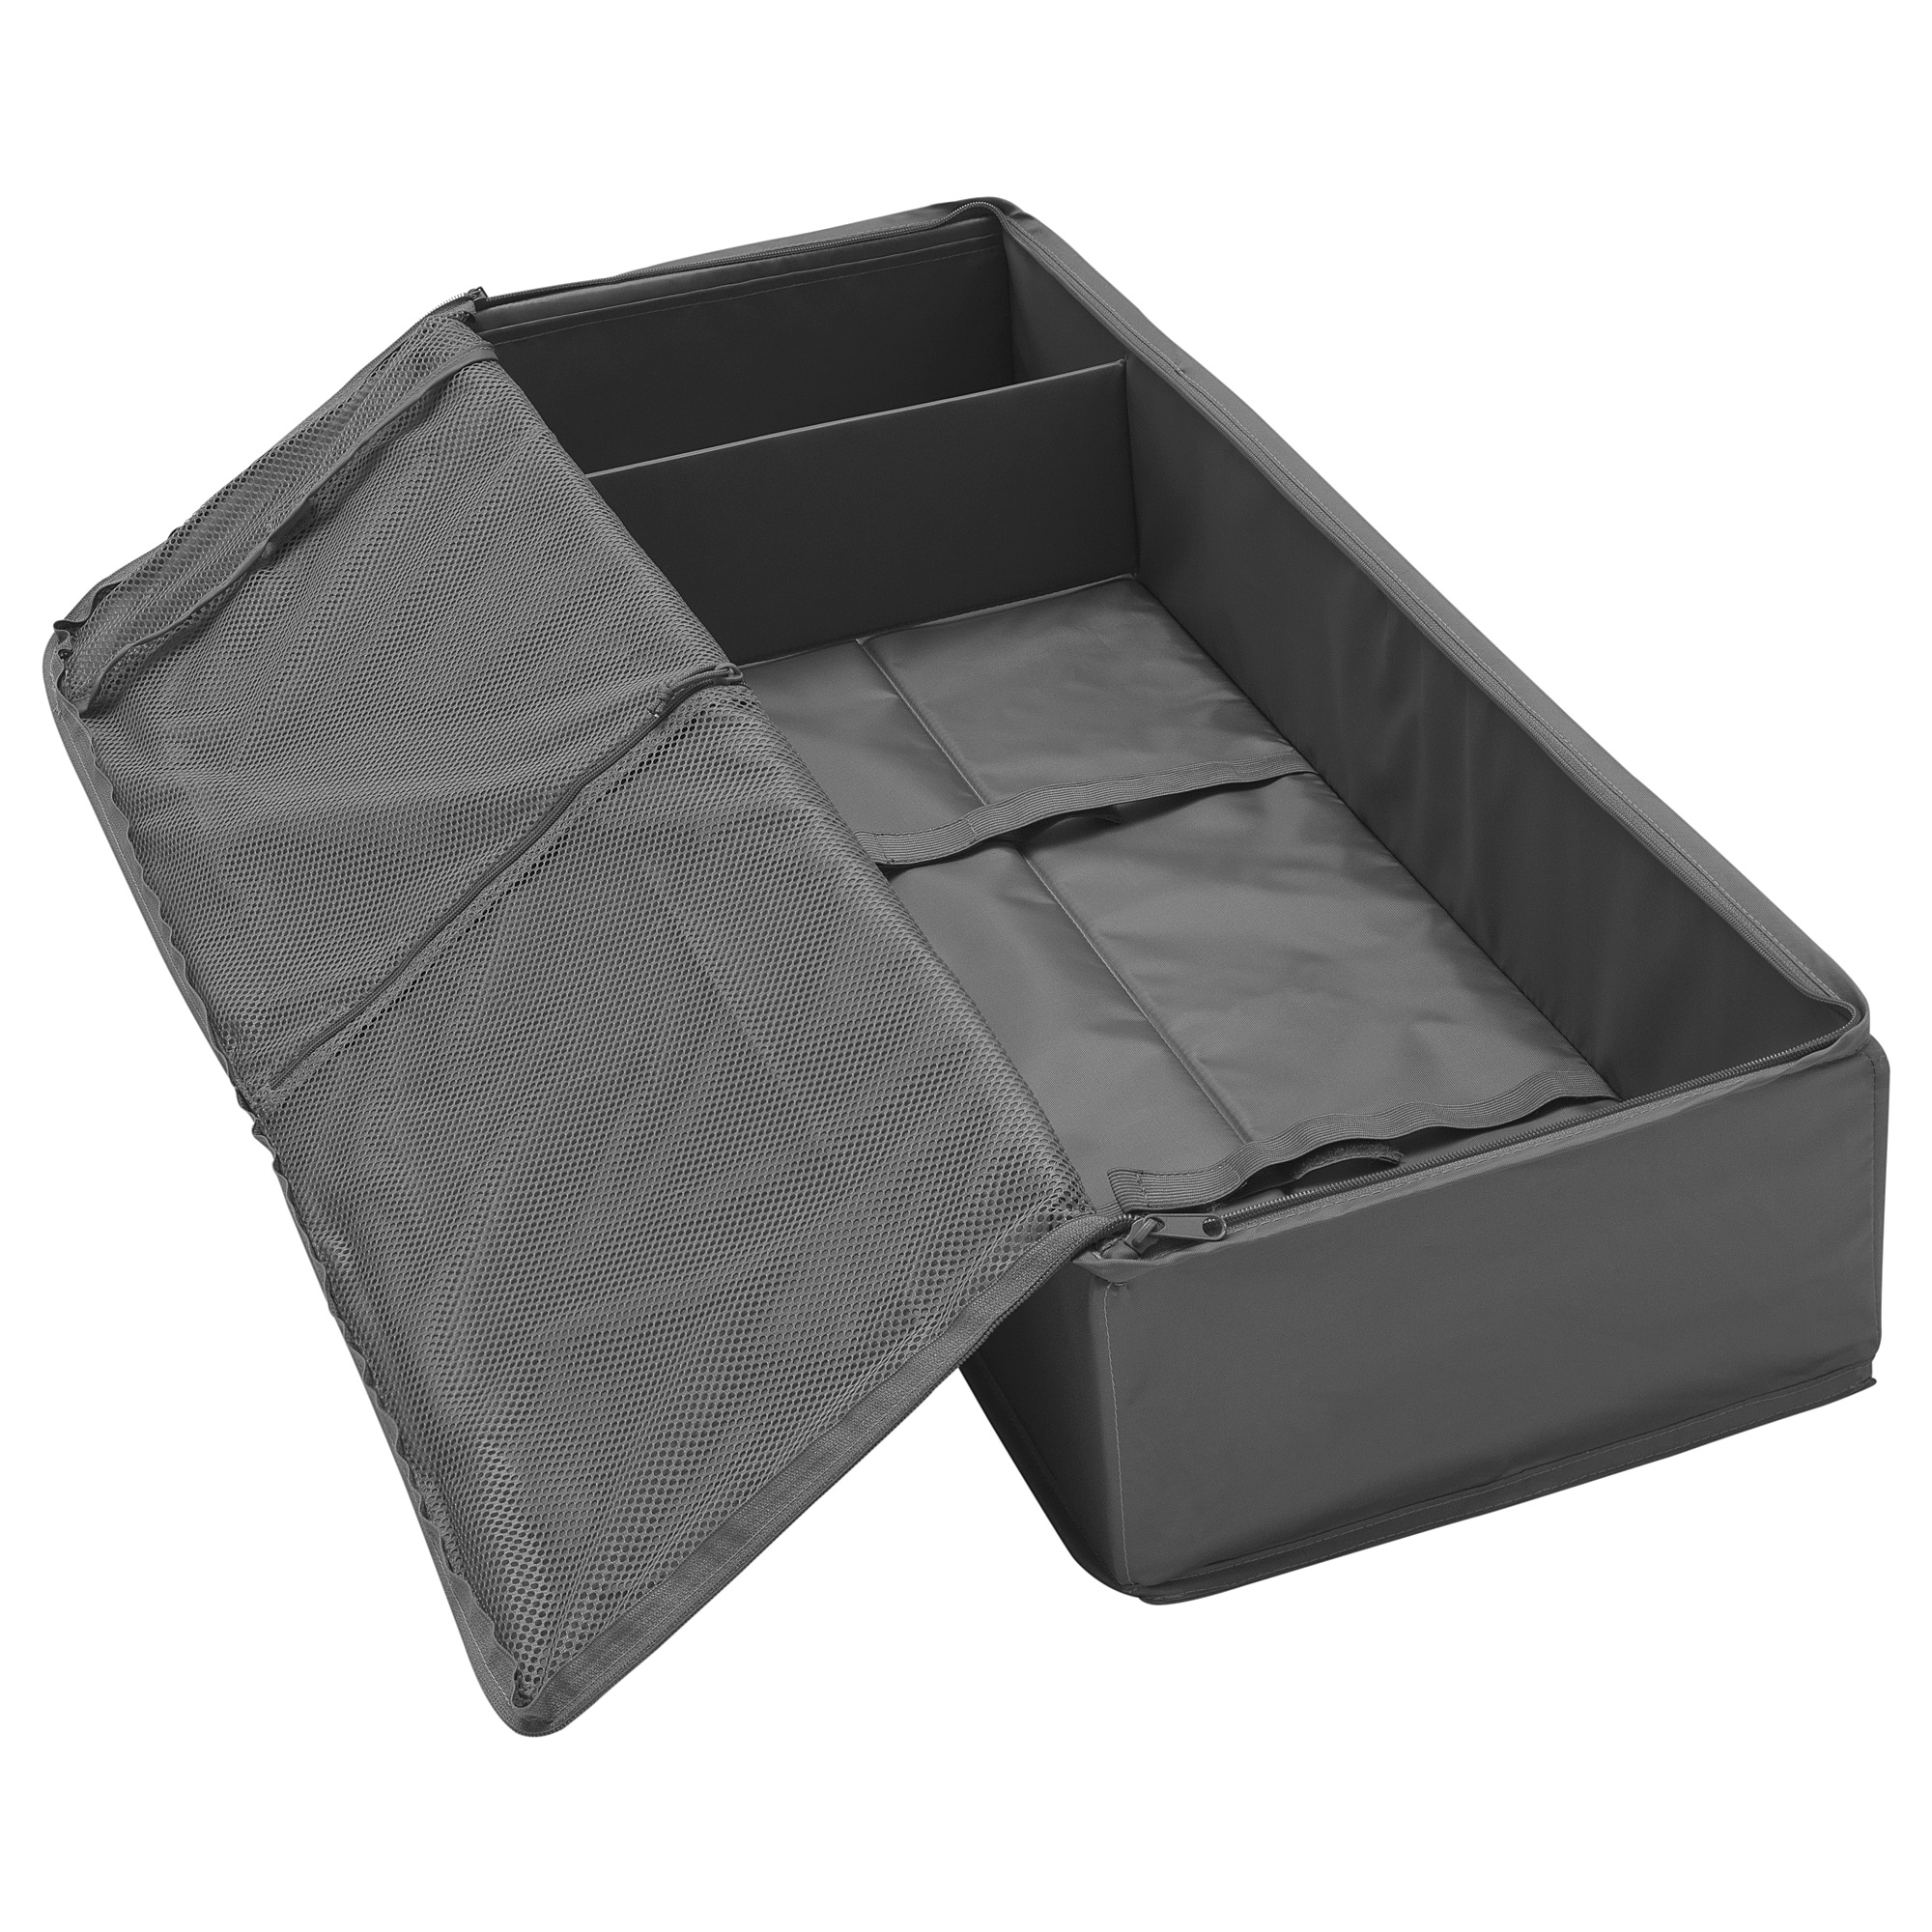 Superieur Storage Case For Wrapping Paper SKUBB Dark Grey